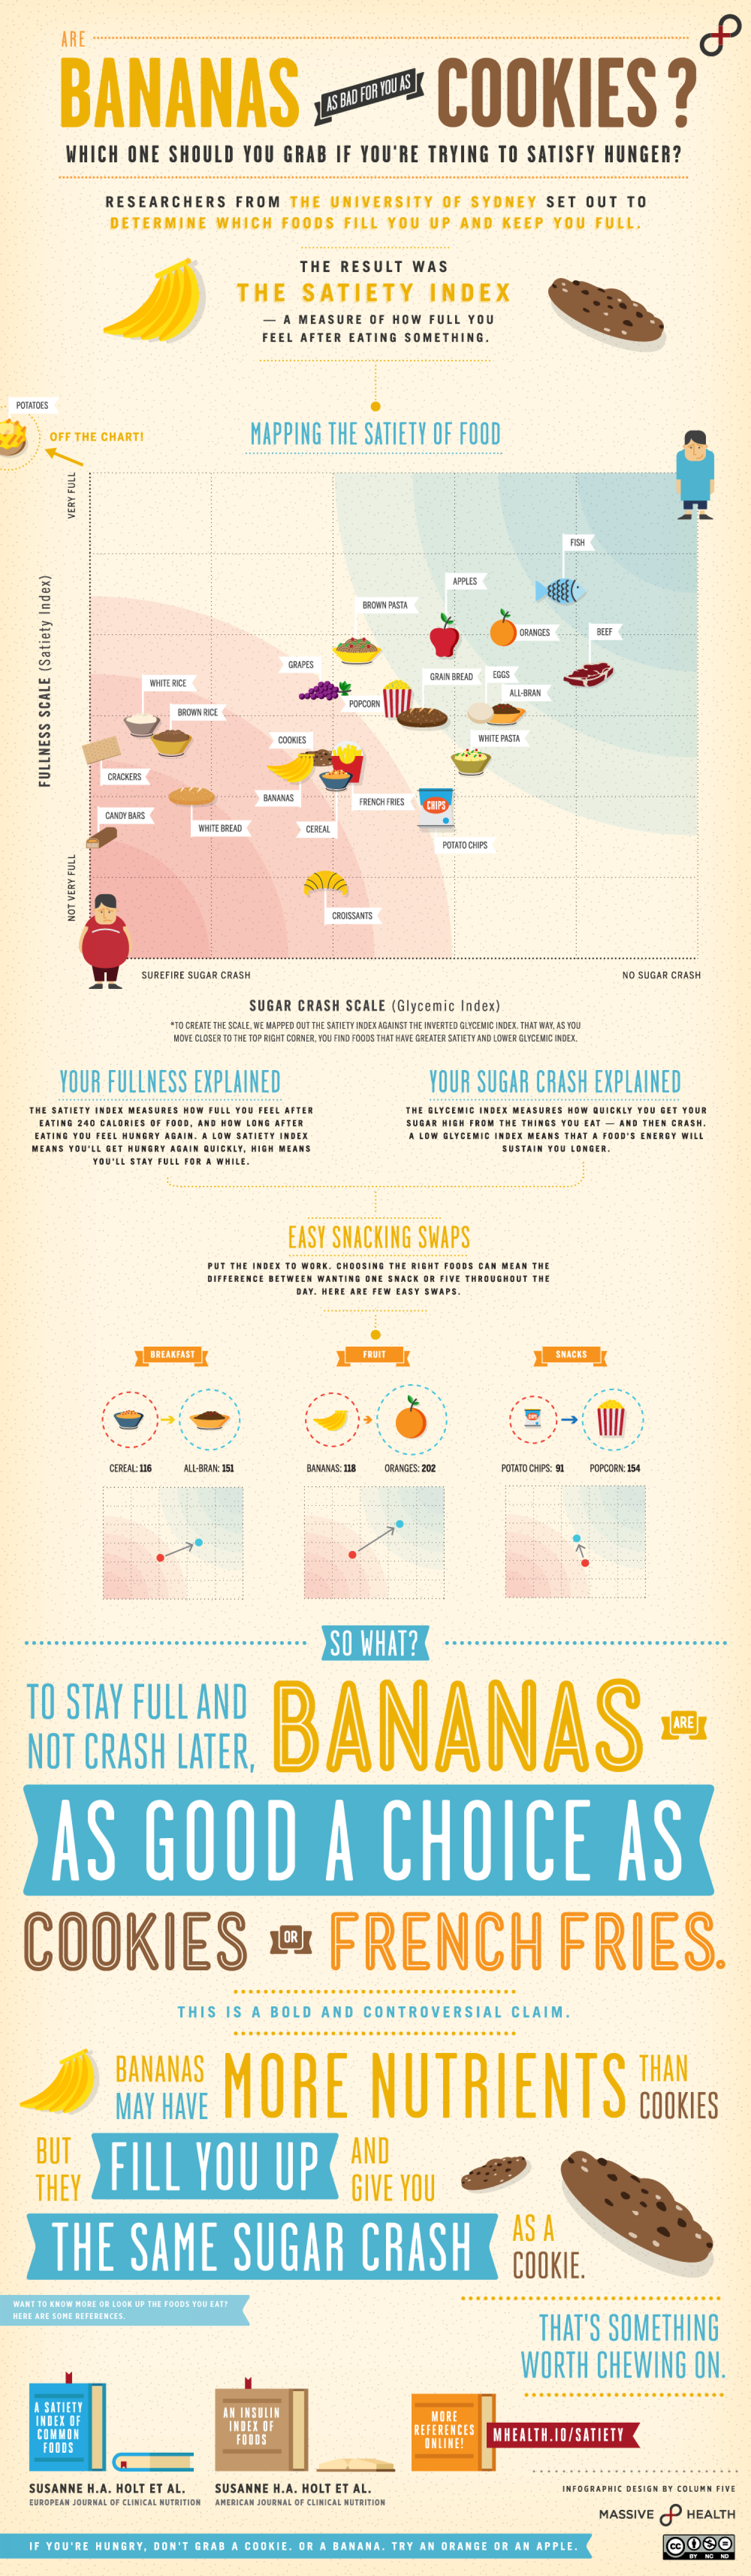 Are Bananas Really As Bad for You as Cookies? Infographic